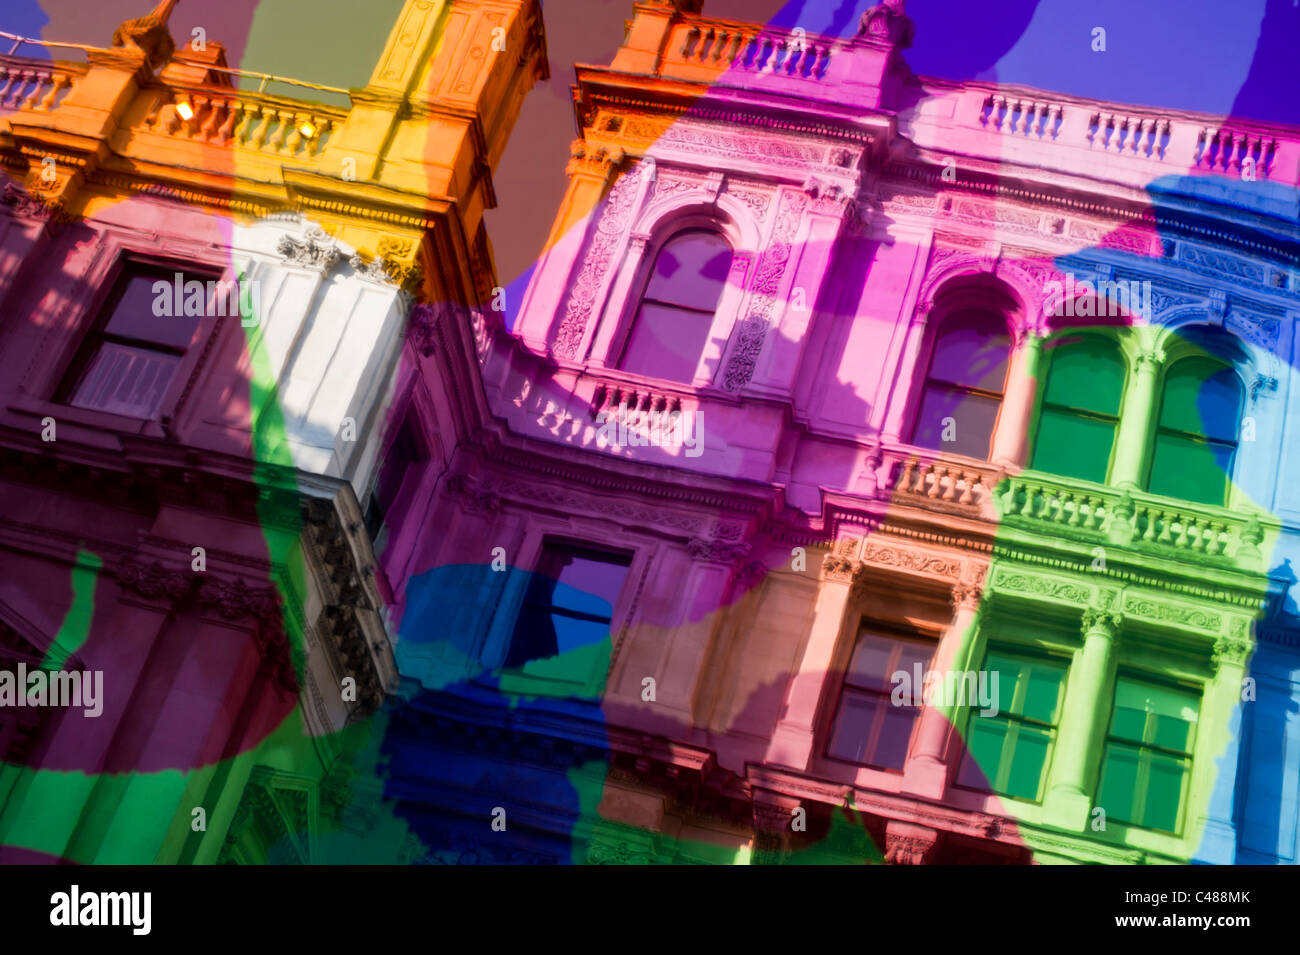 Coloring book by jeff koons - Jeff Koons Hon Ra Coloring Book 2011 Sculpture In The Annenberg Courtyard At The Royal Academy For The Summer Show 2011